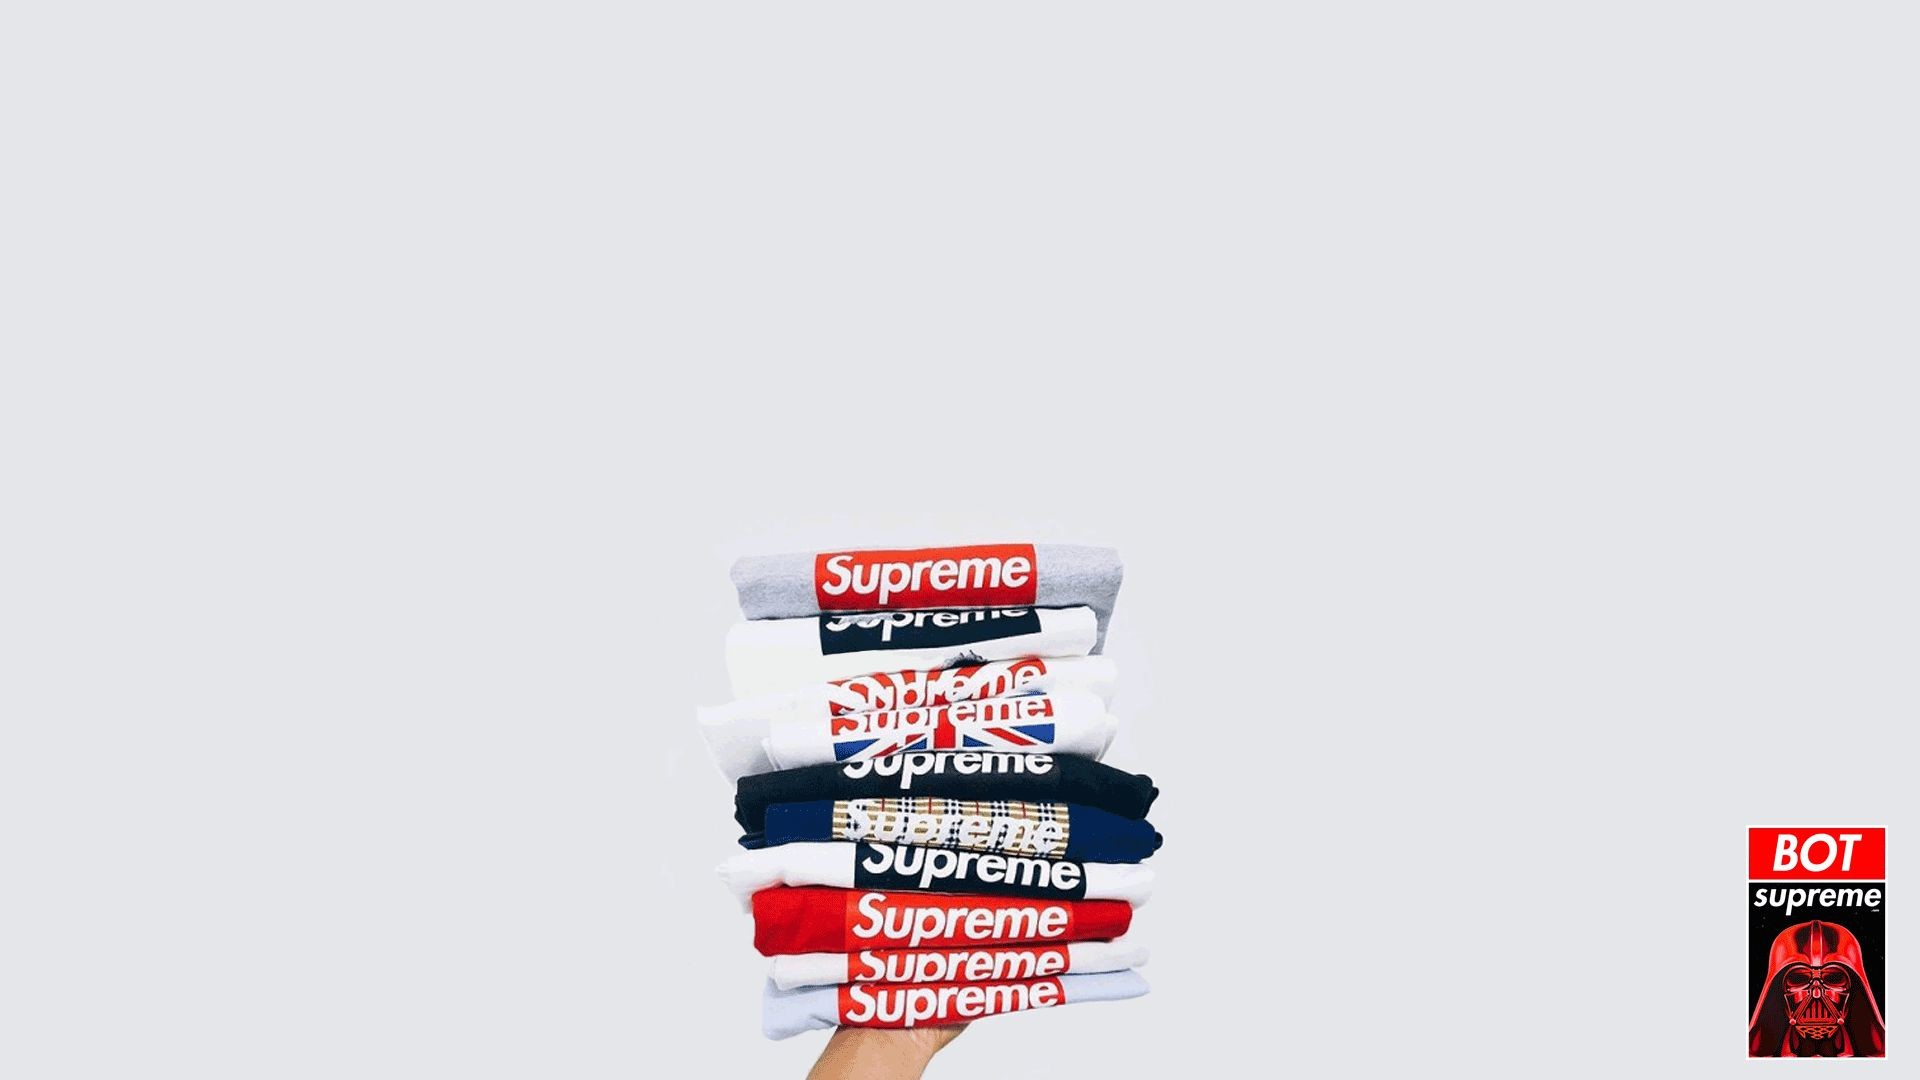 1920x1080, Supreme Wallpapers Hd Is Cool Wallpapers - Supreme Wallpaper For Mac - HD Wallpaper